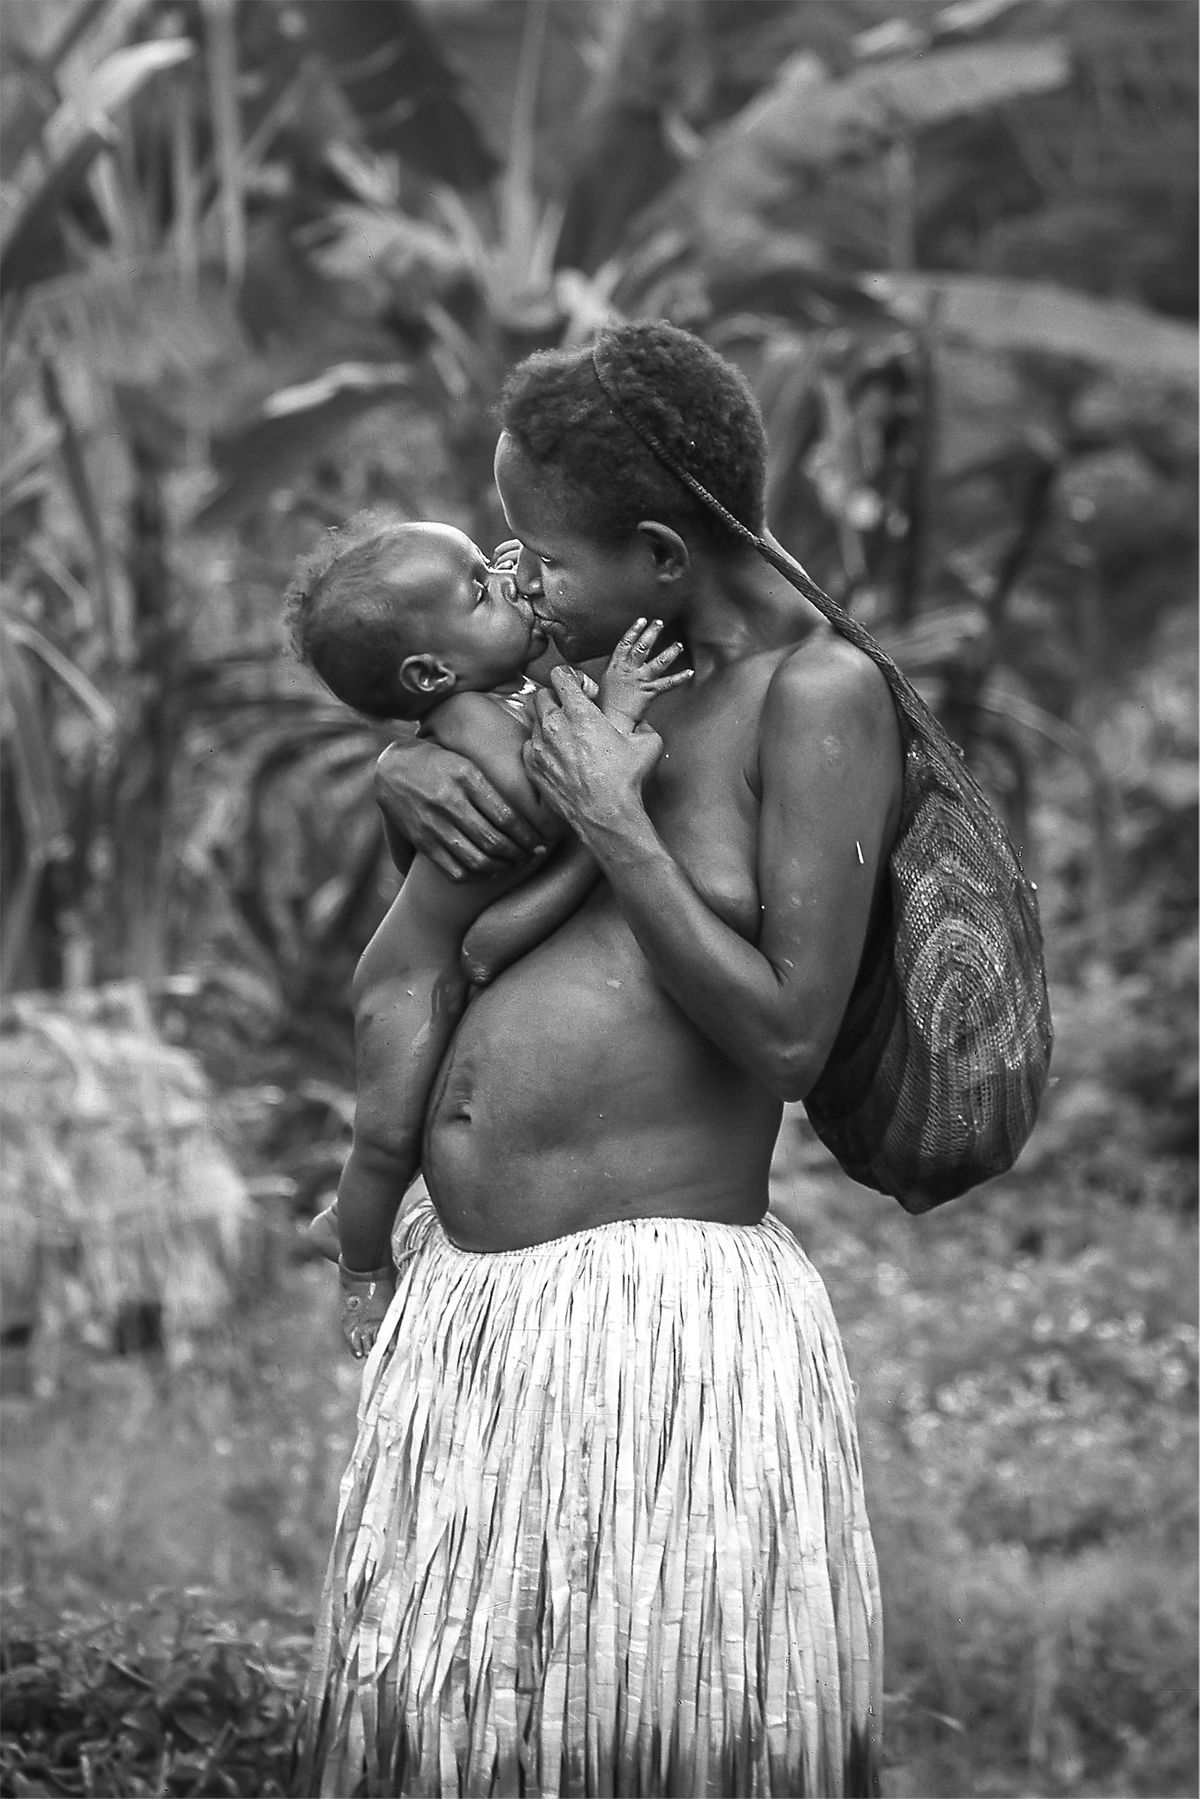 Mutterliebe / mother's love (Irian Jaya) b&w121